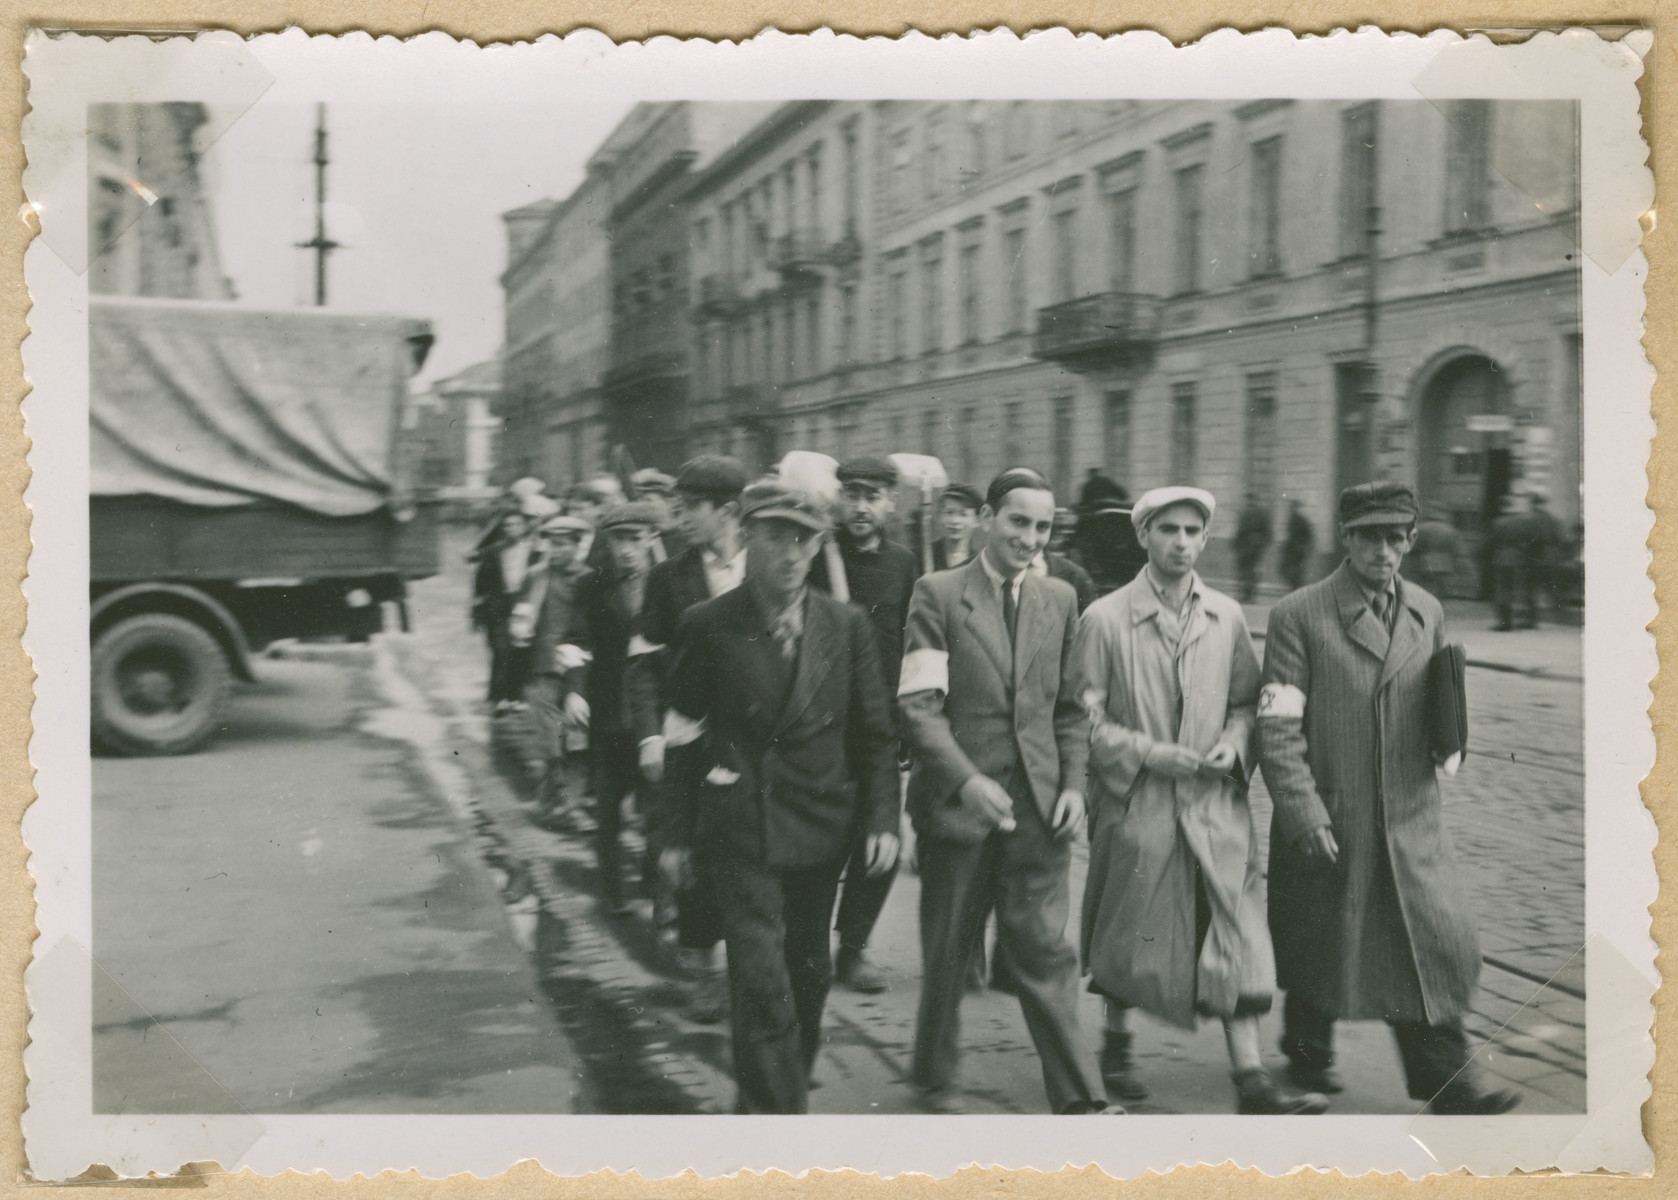 A group of Jewish men wearing armbands and some carrying shovels marches off for a labor assignment in an unidentified Polish city.